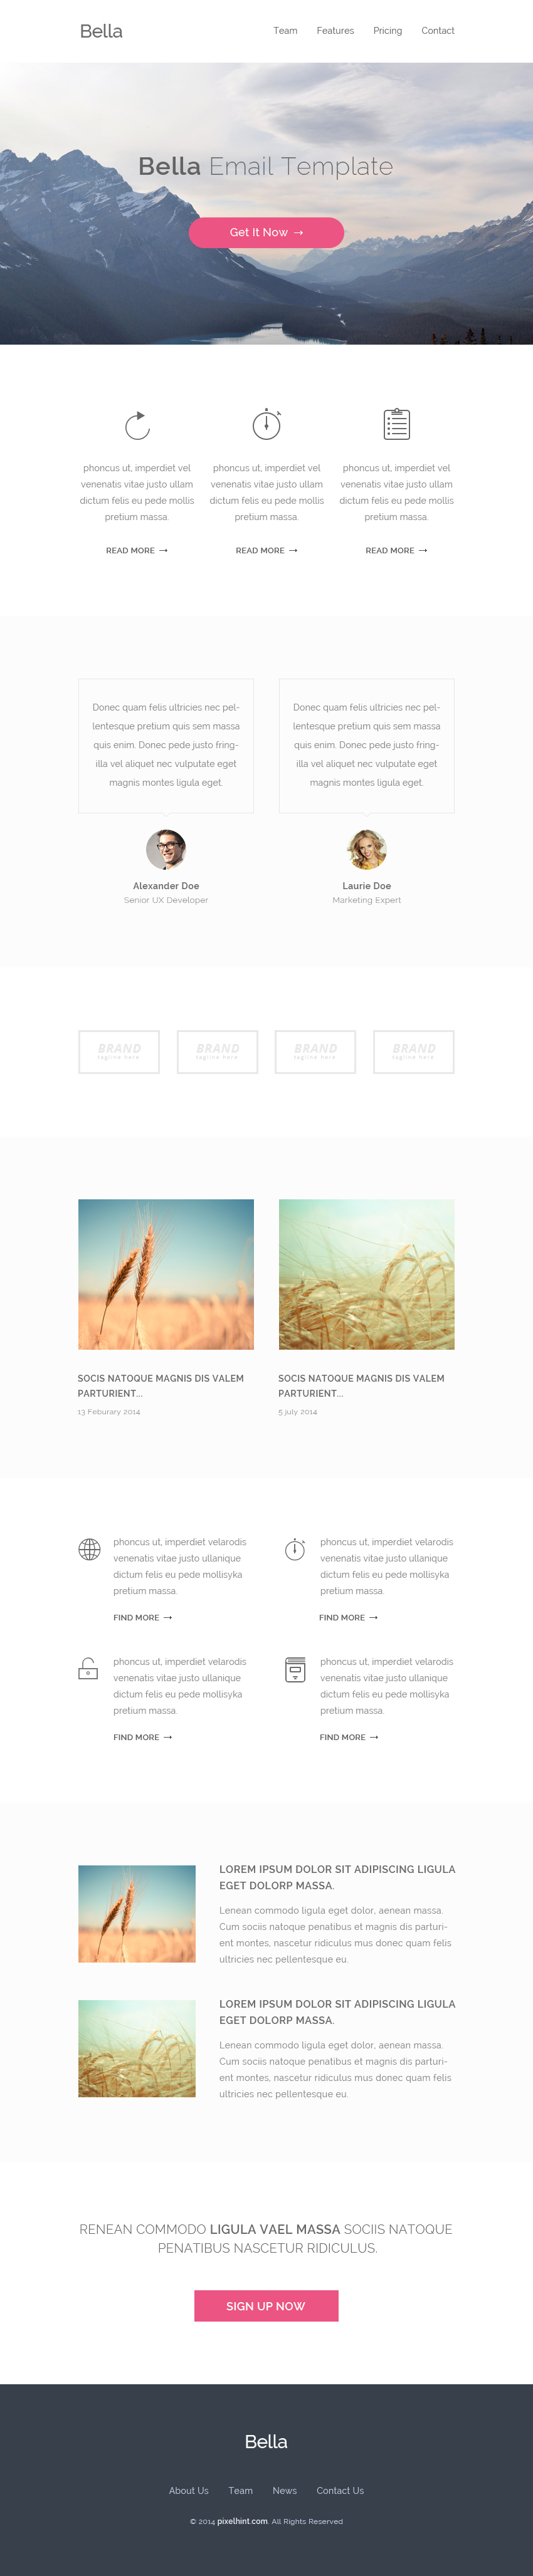 Free PSD & HTML Email Template